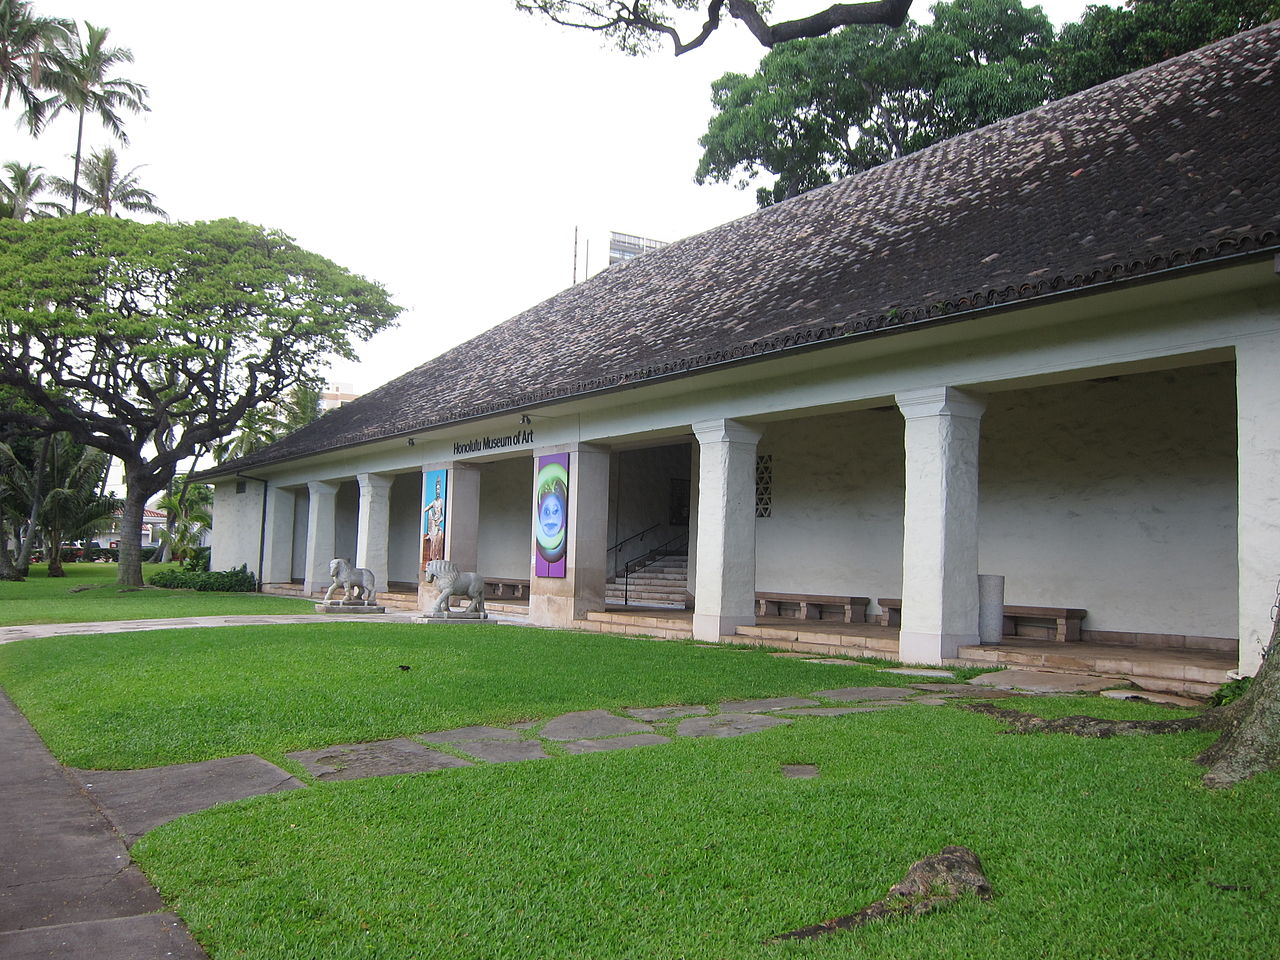 Honolulu Museum of Art, Oahu - Top Museum to Visit in Hawaii